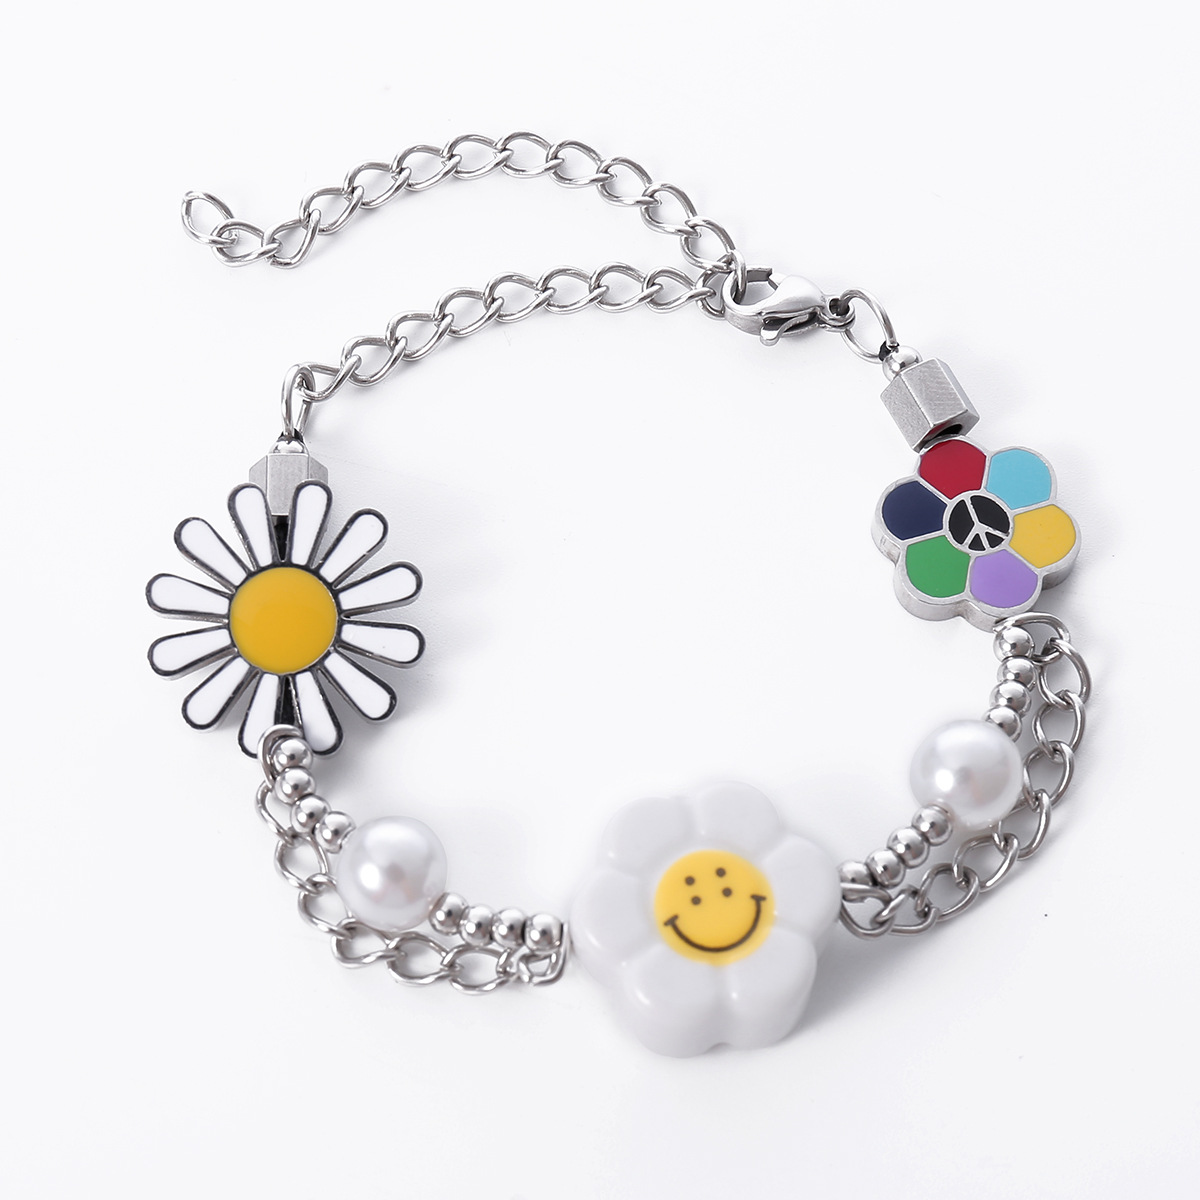 Adorable Daisy Jewelry for Kids